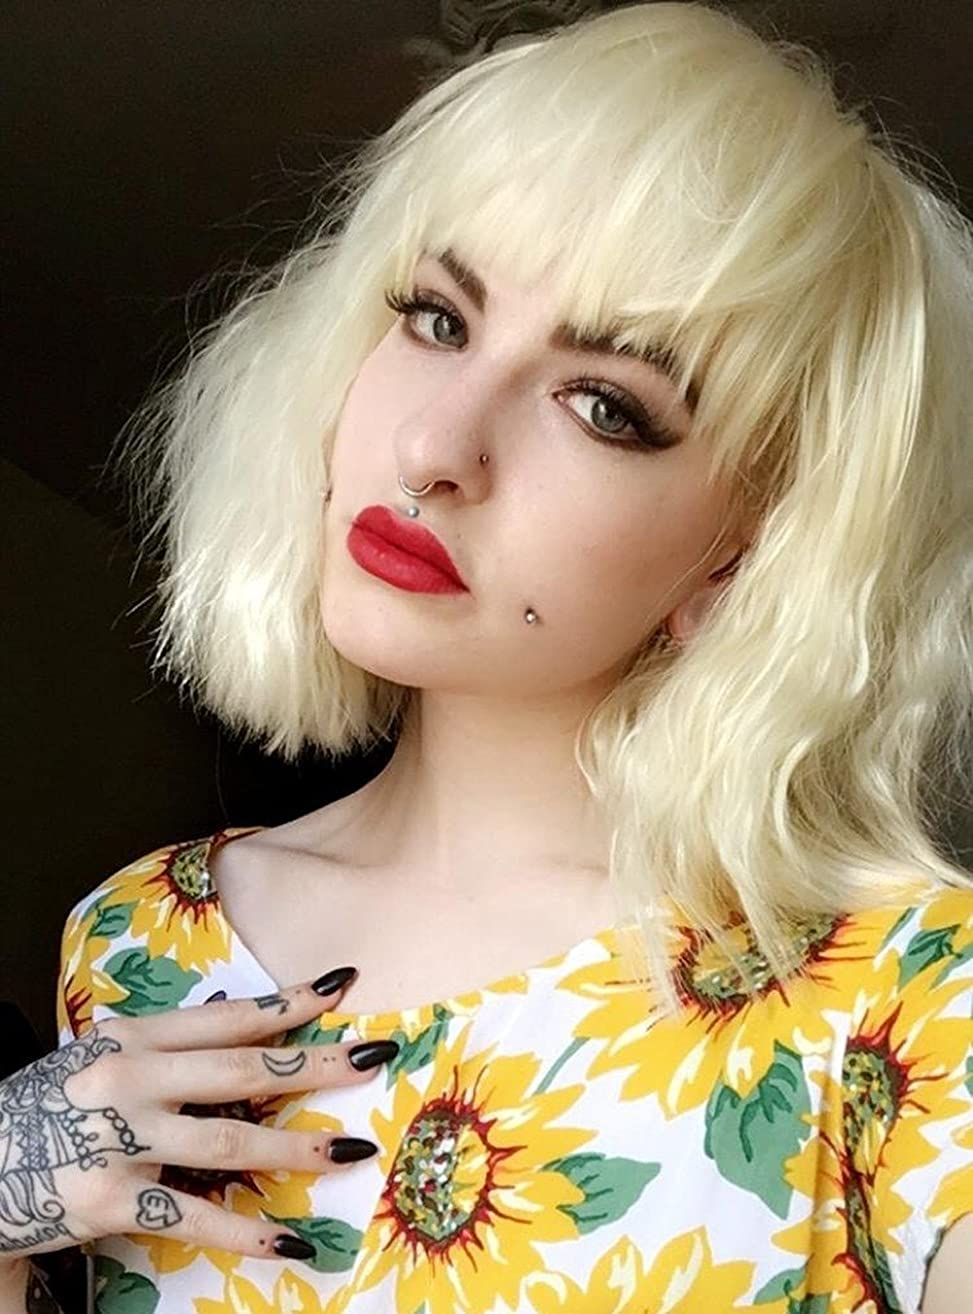 eNilecor Short Fluffy Bob Kinky Straight Hair Wigs with Bangs Synthetic Heat Resistant Women Fashion Hairstyles Custom Cosplay Party Wigs + Wig Cap(Light Blonde)